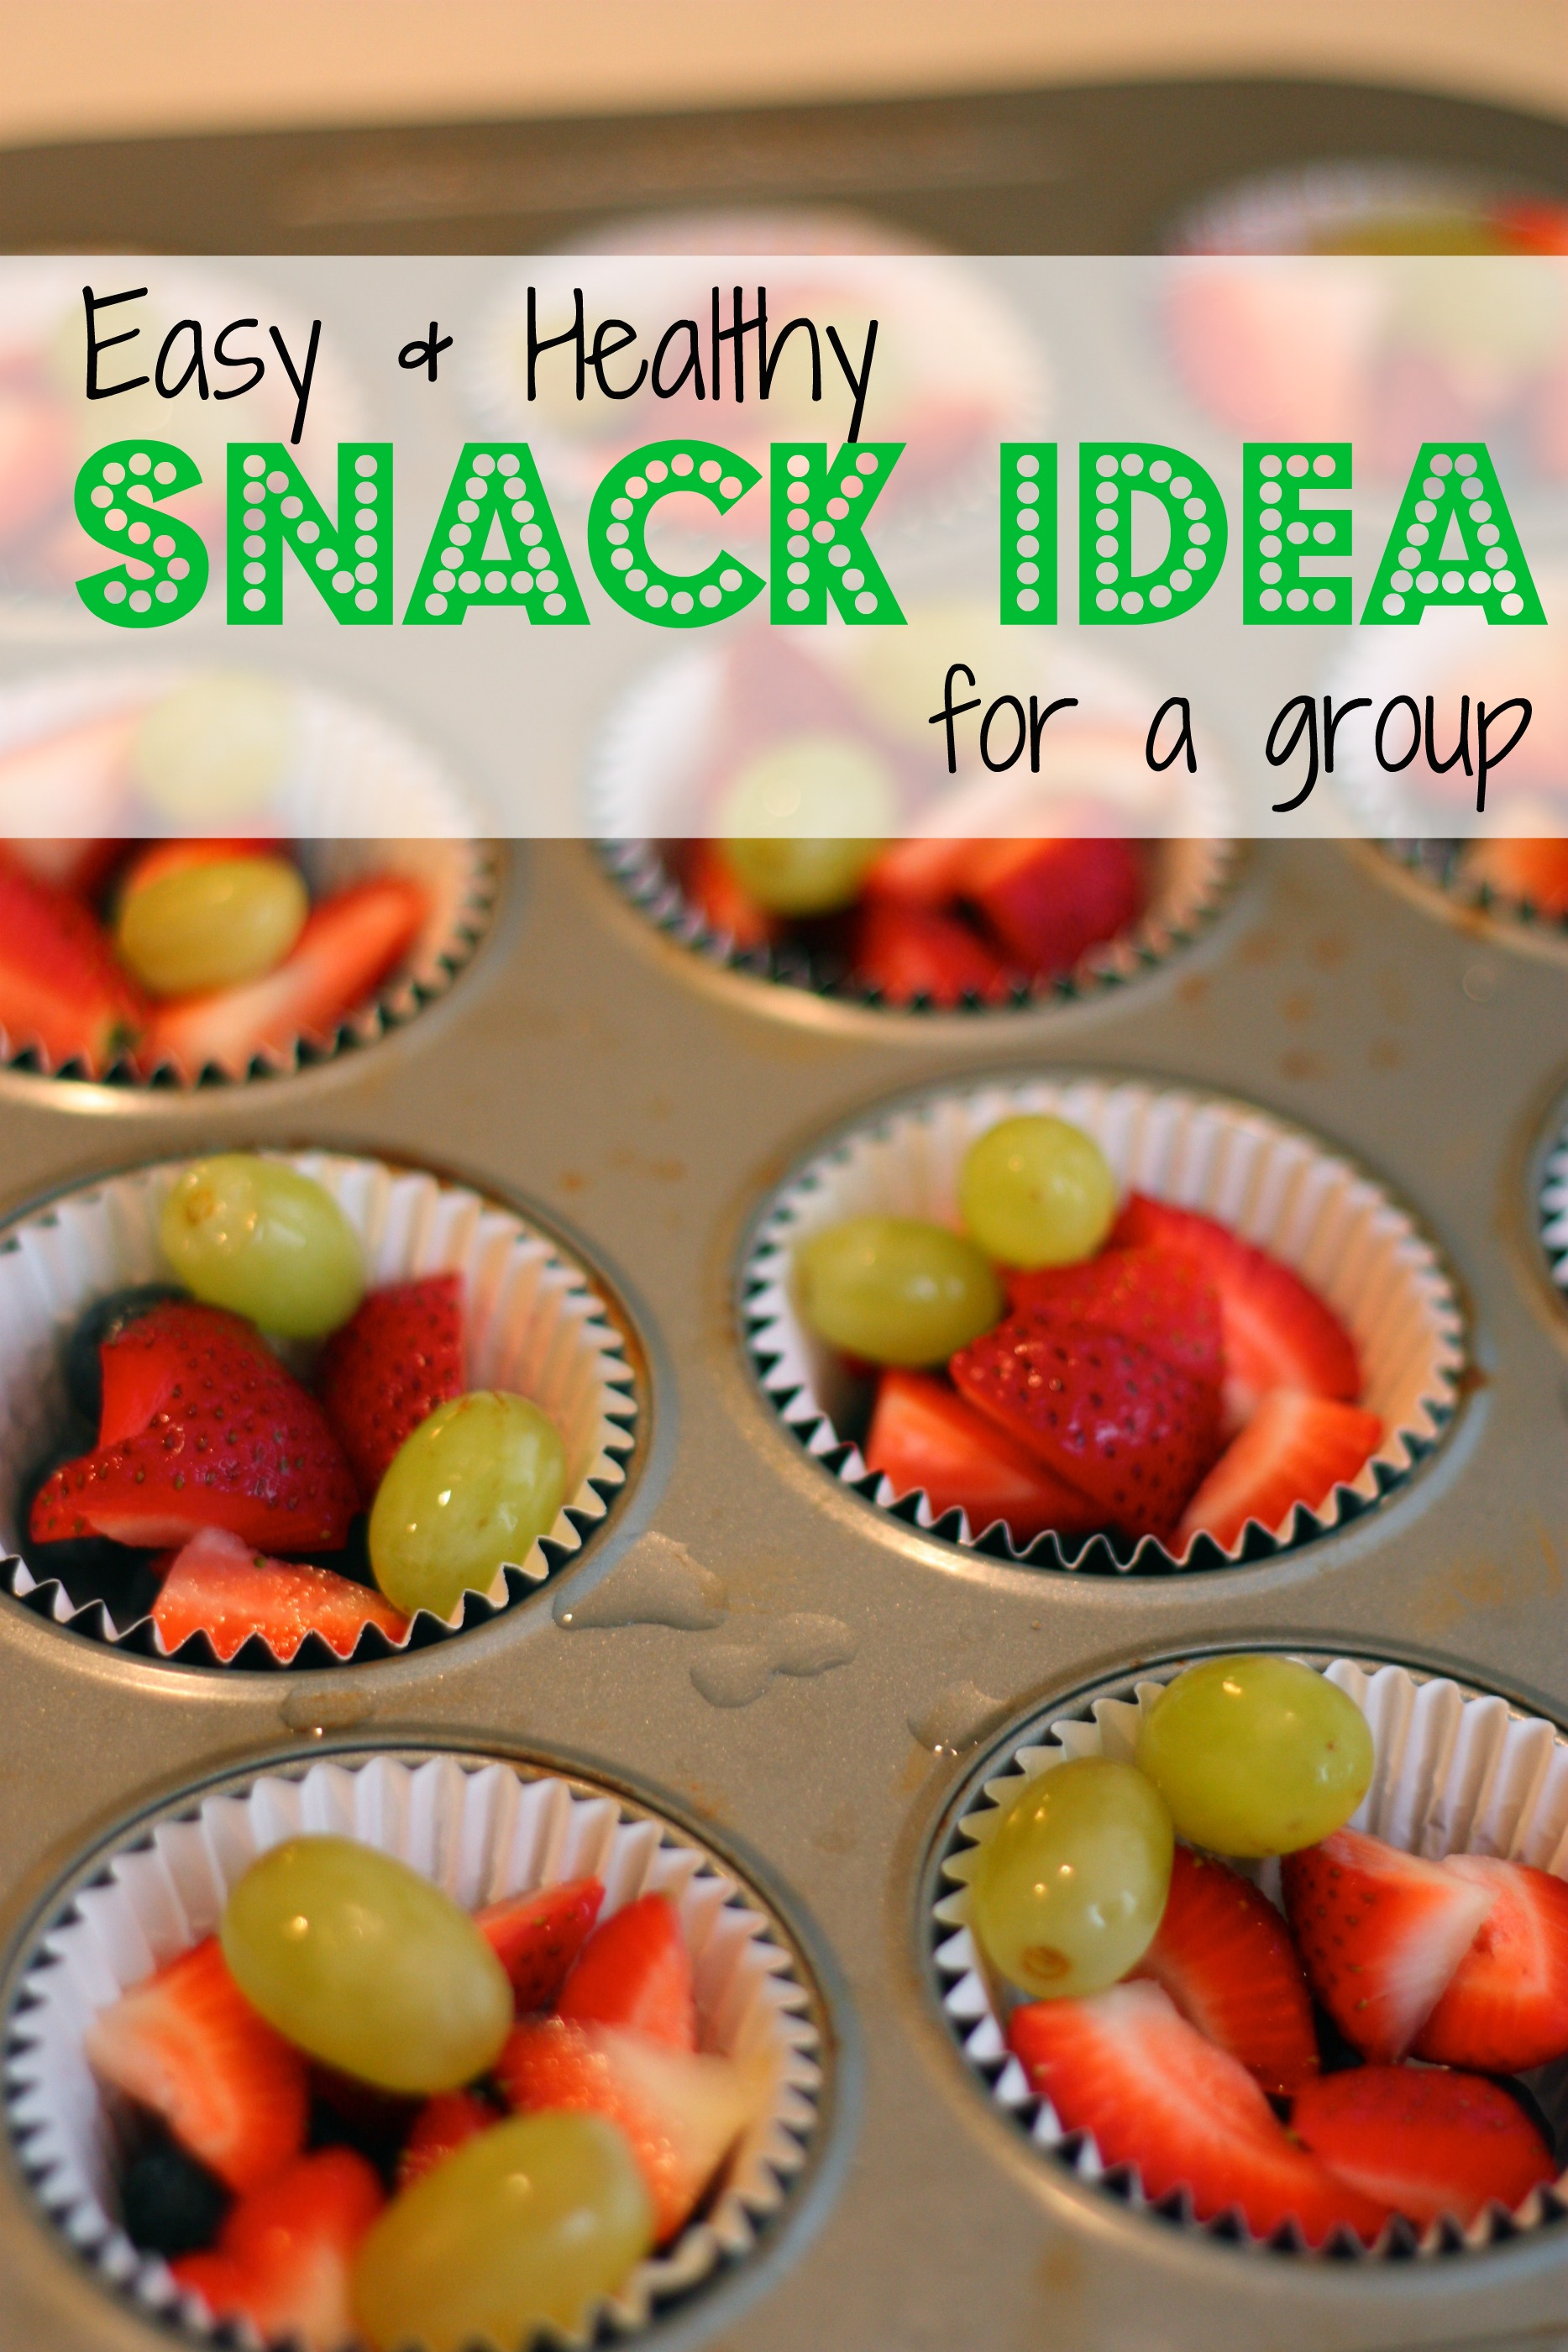 Snack Idea Individual Portions Of Mixed Fruit